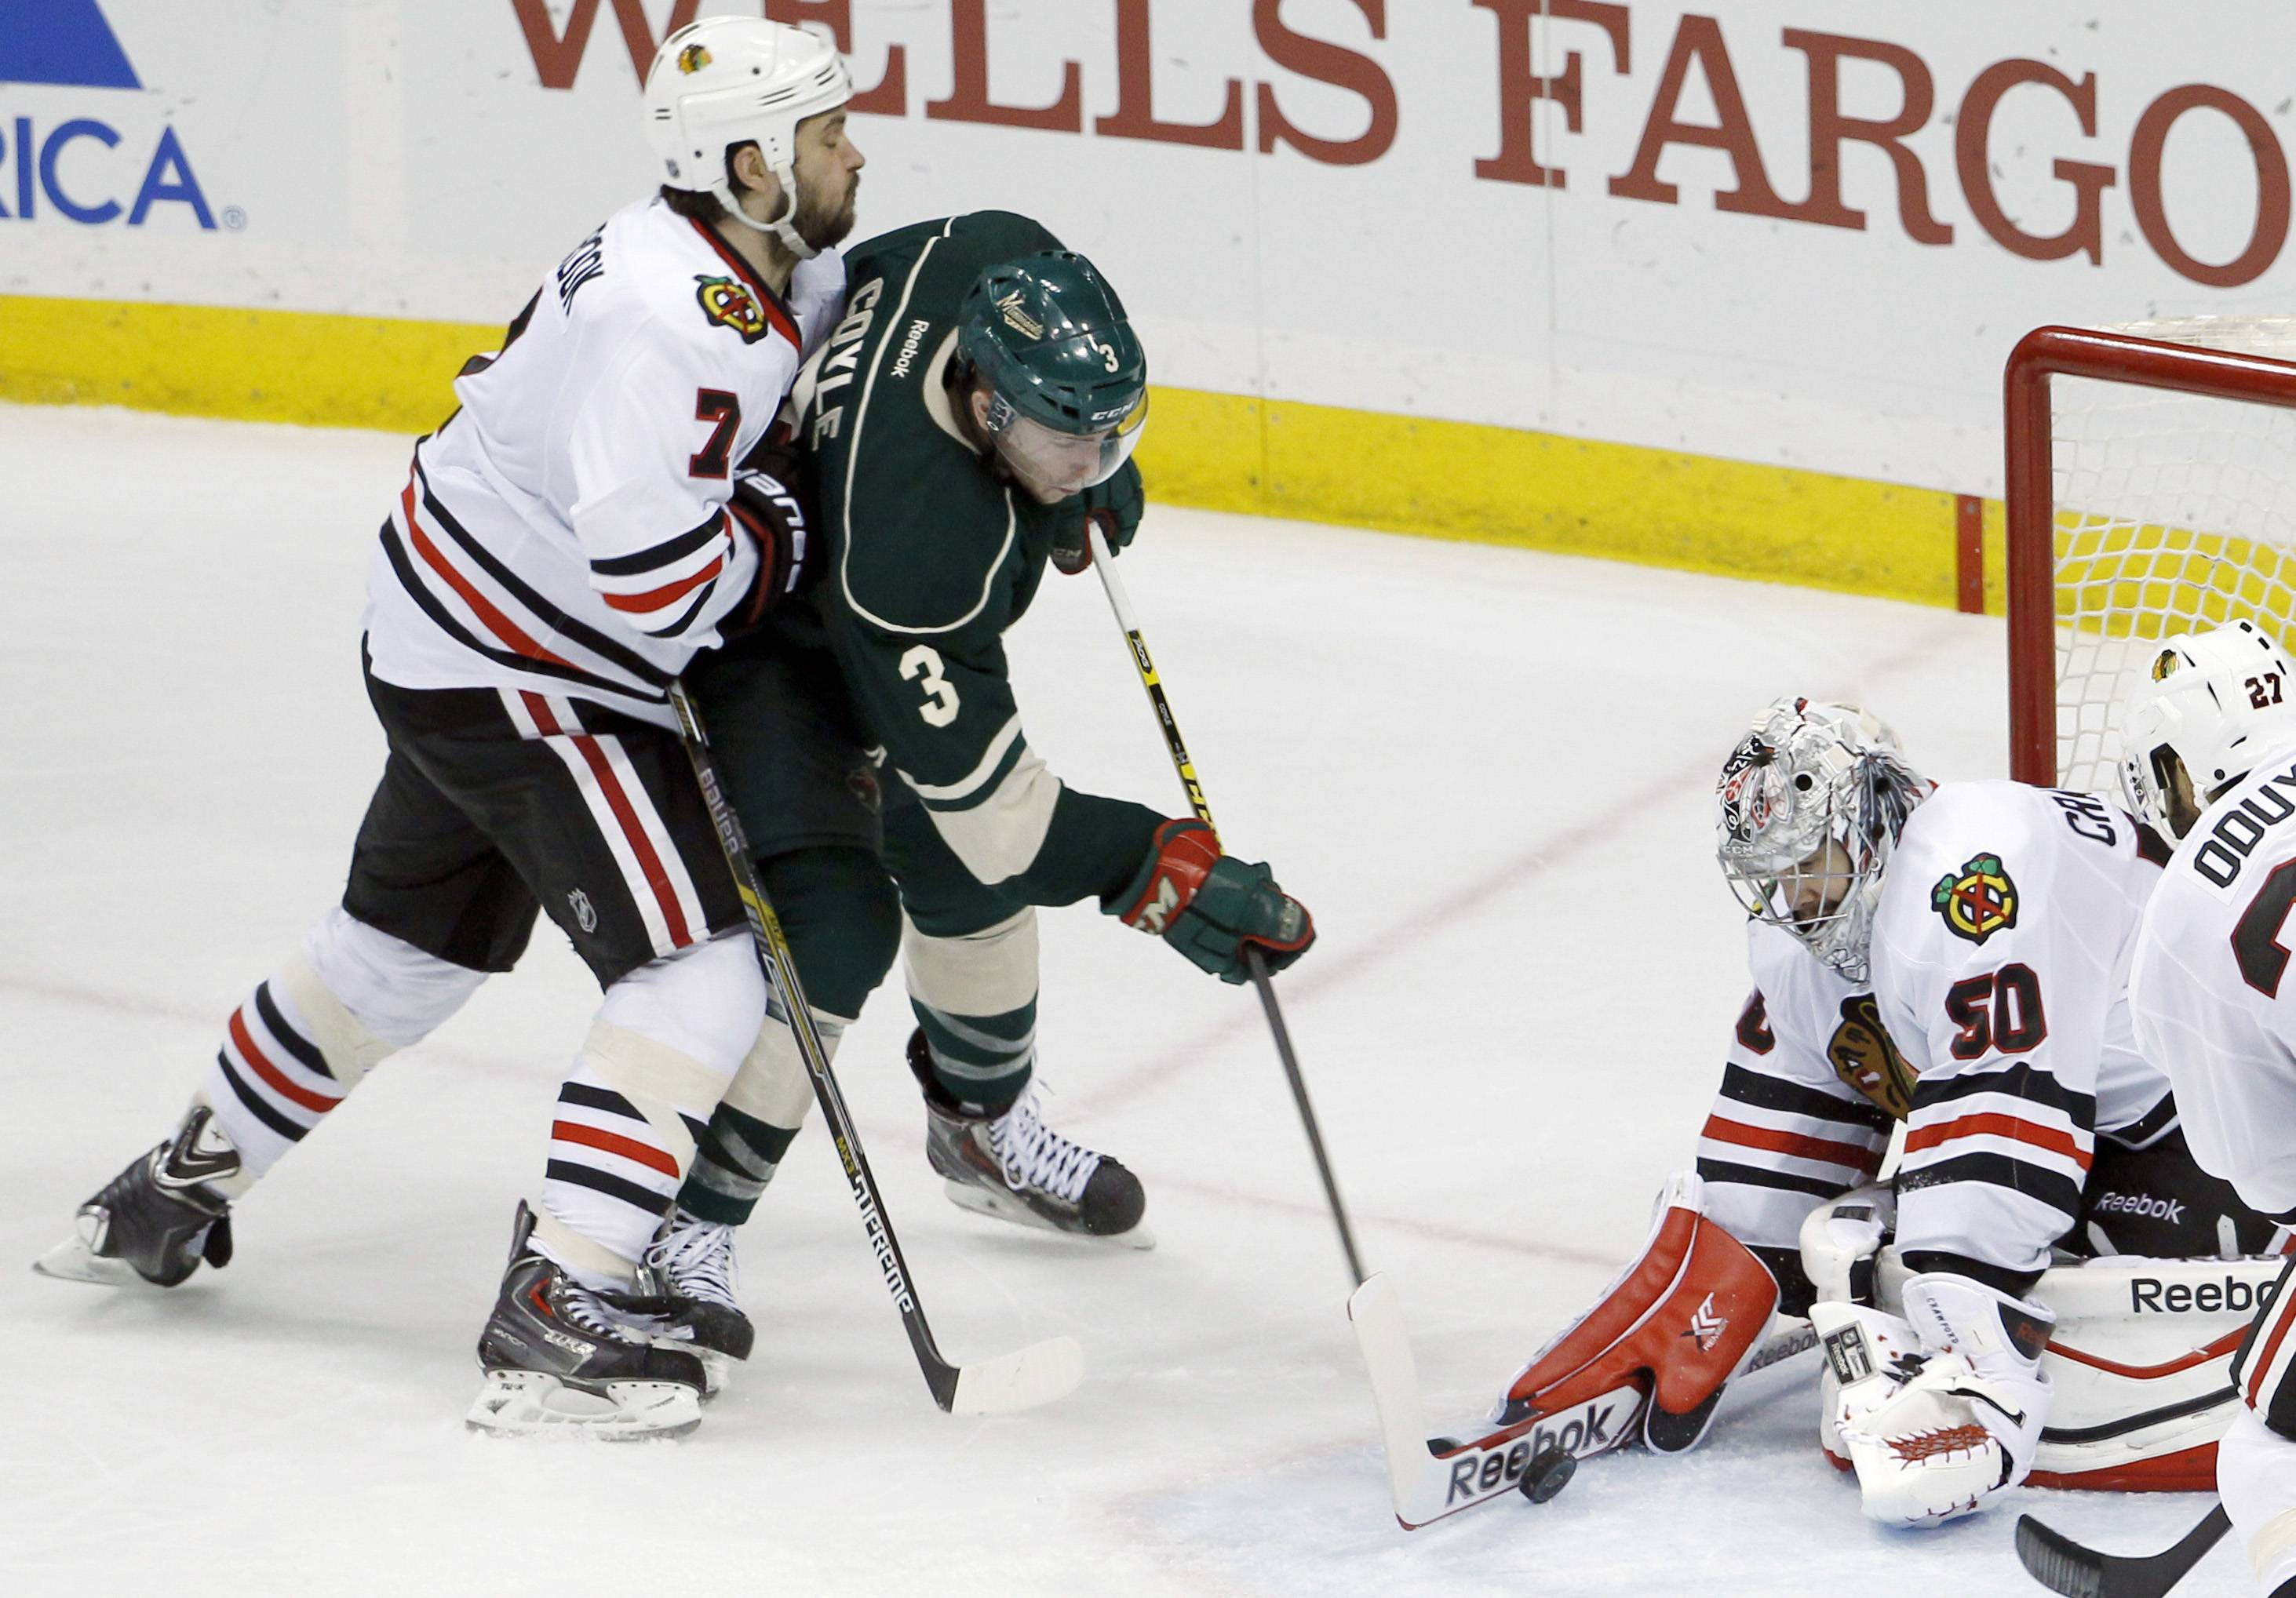 Blackhawks goalie Corey Crawford (50) scoops away a shot by Minnesota Wild center Charlie Coyle (3) as Blackhawks defenseman Brent Seabrook (7) pressures Coyle during the third period of Game 6 of an NHL hockey second-round playoff series in St. Paul, Minn., Tuesday, May 13, 2014. The Blackhawks won 2-1 in overtime.